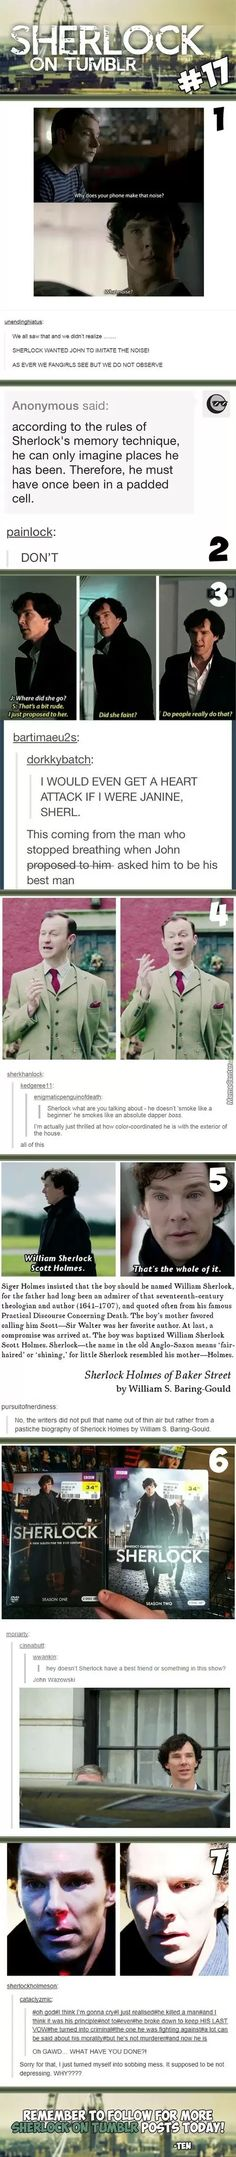 Sherlock On Tumblr #17